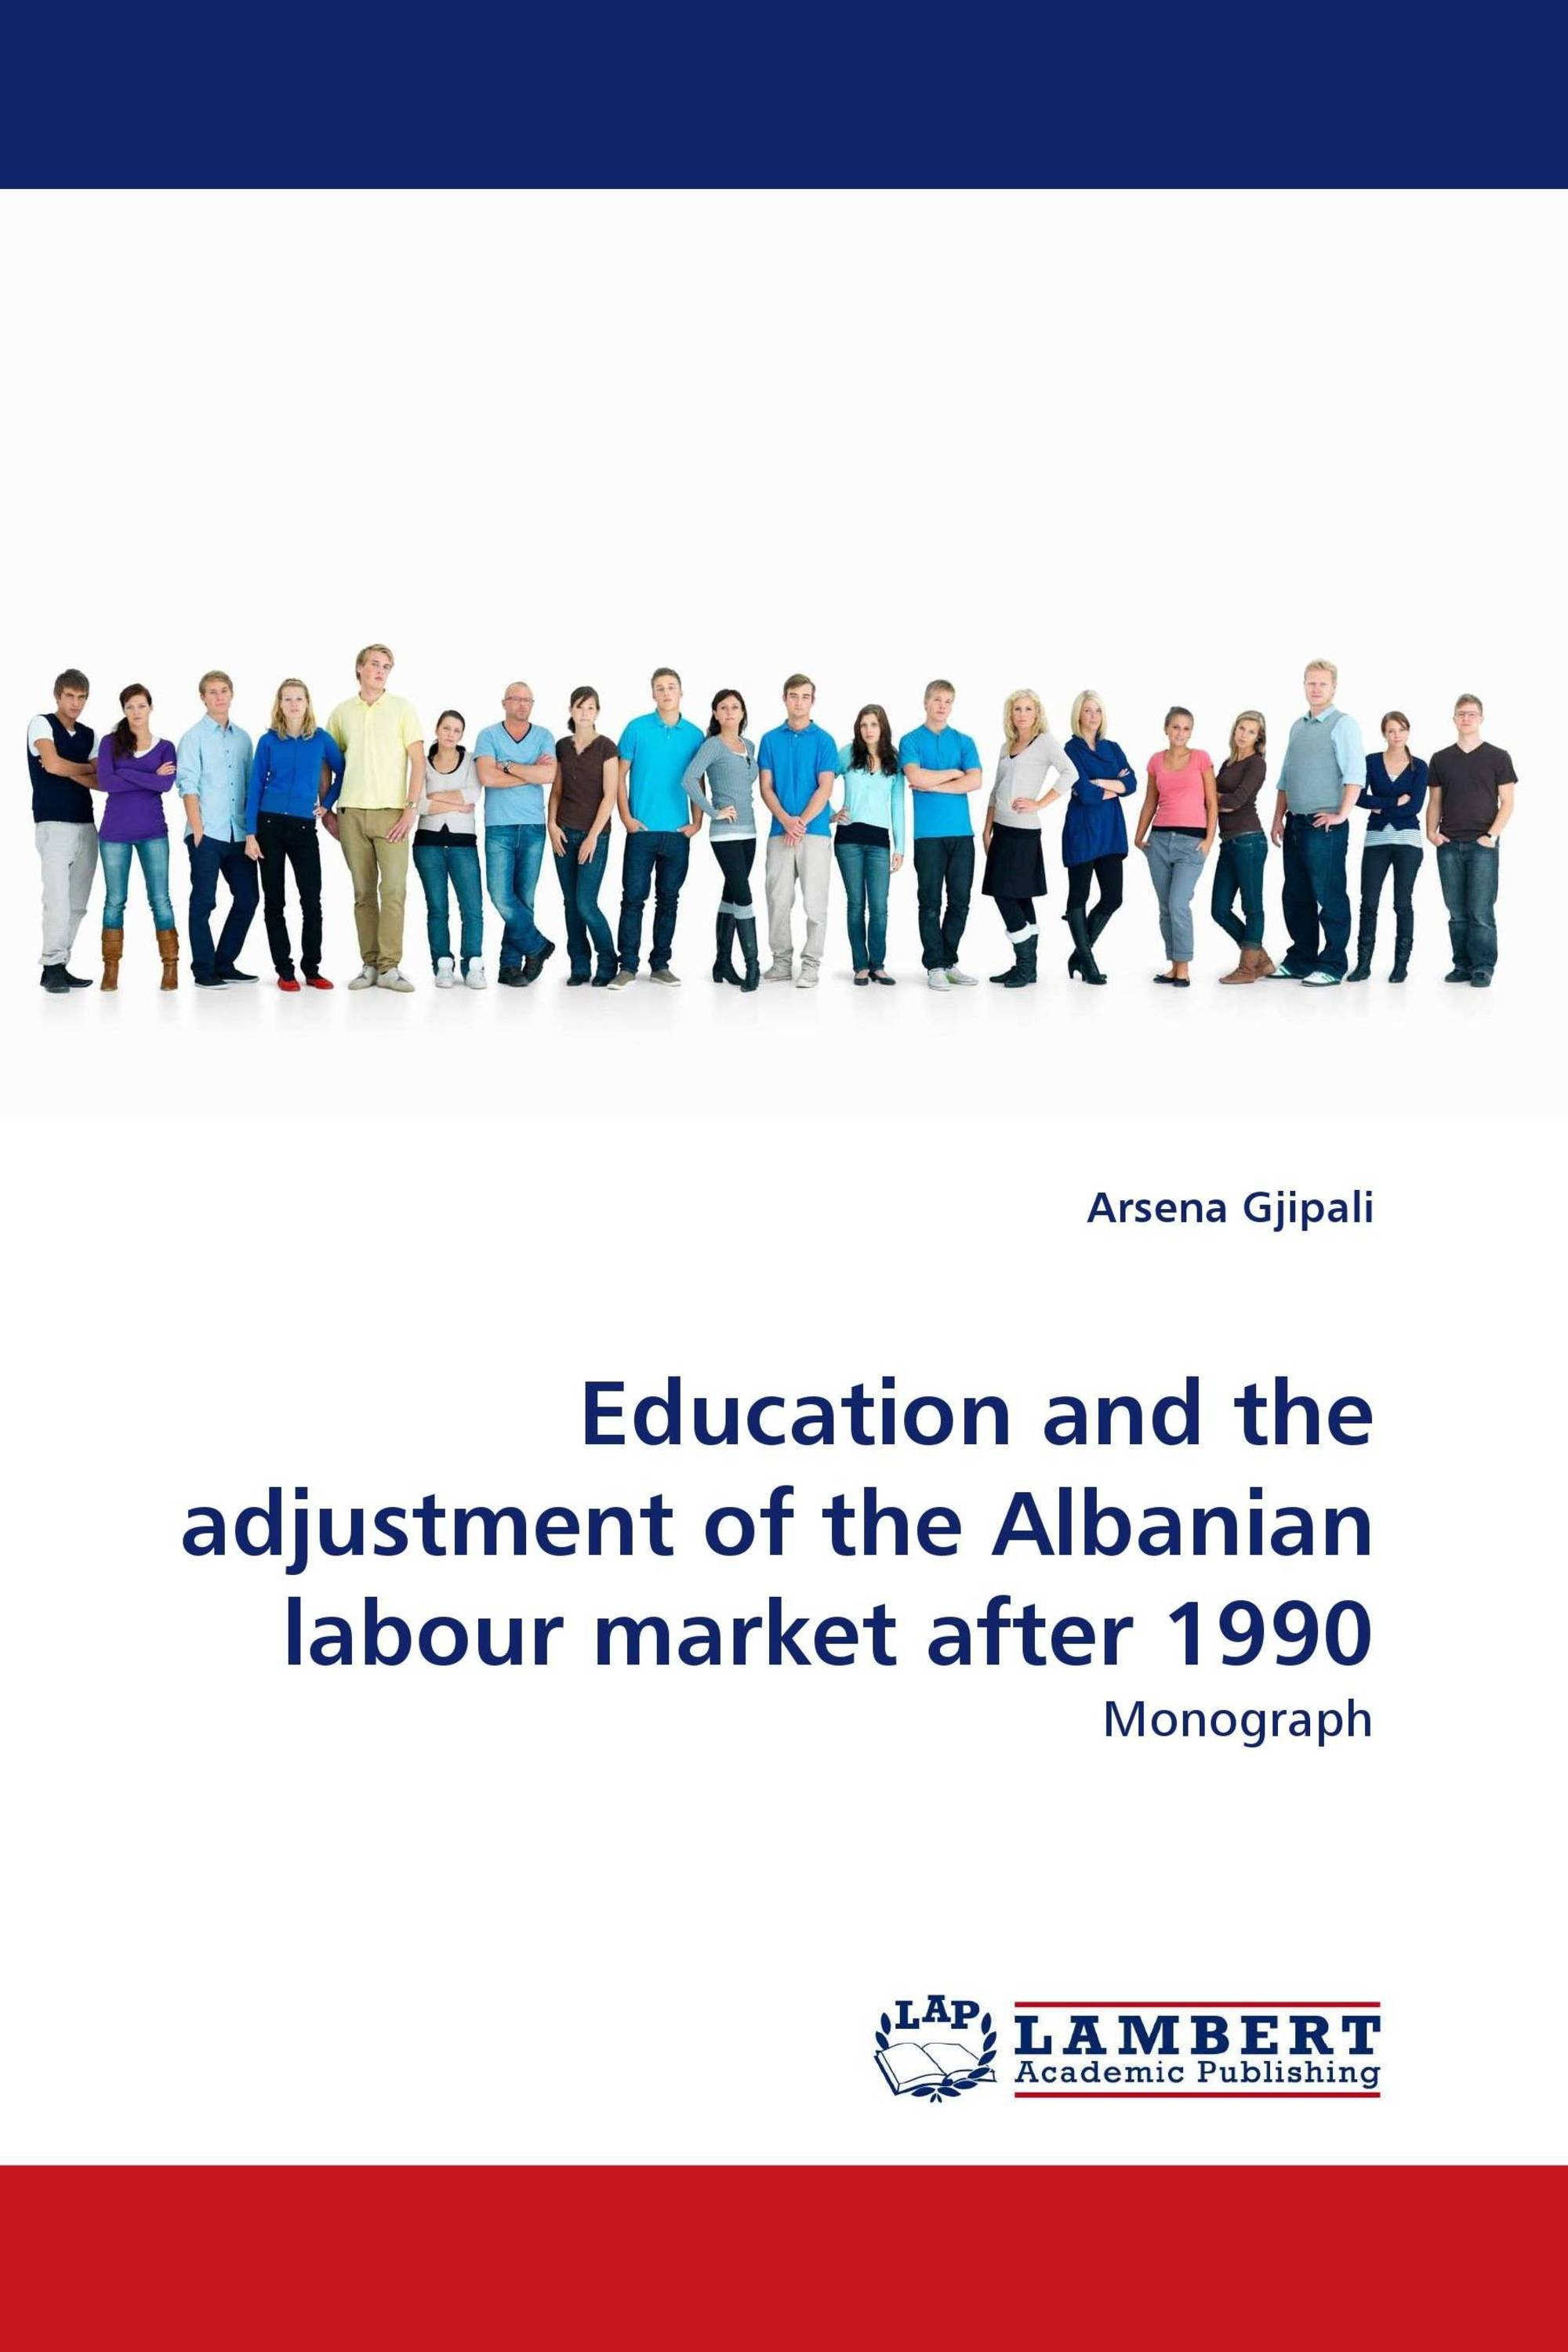 Education and the adjustment of the Albanian labour market after 1990